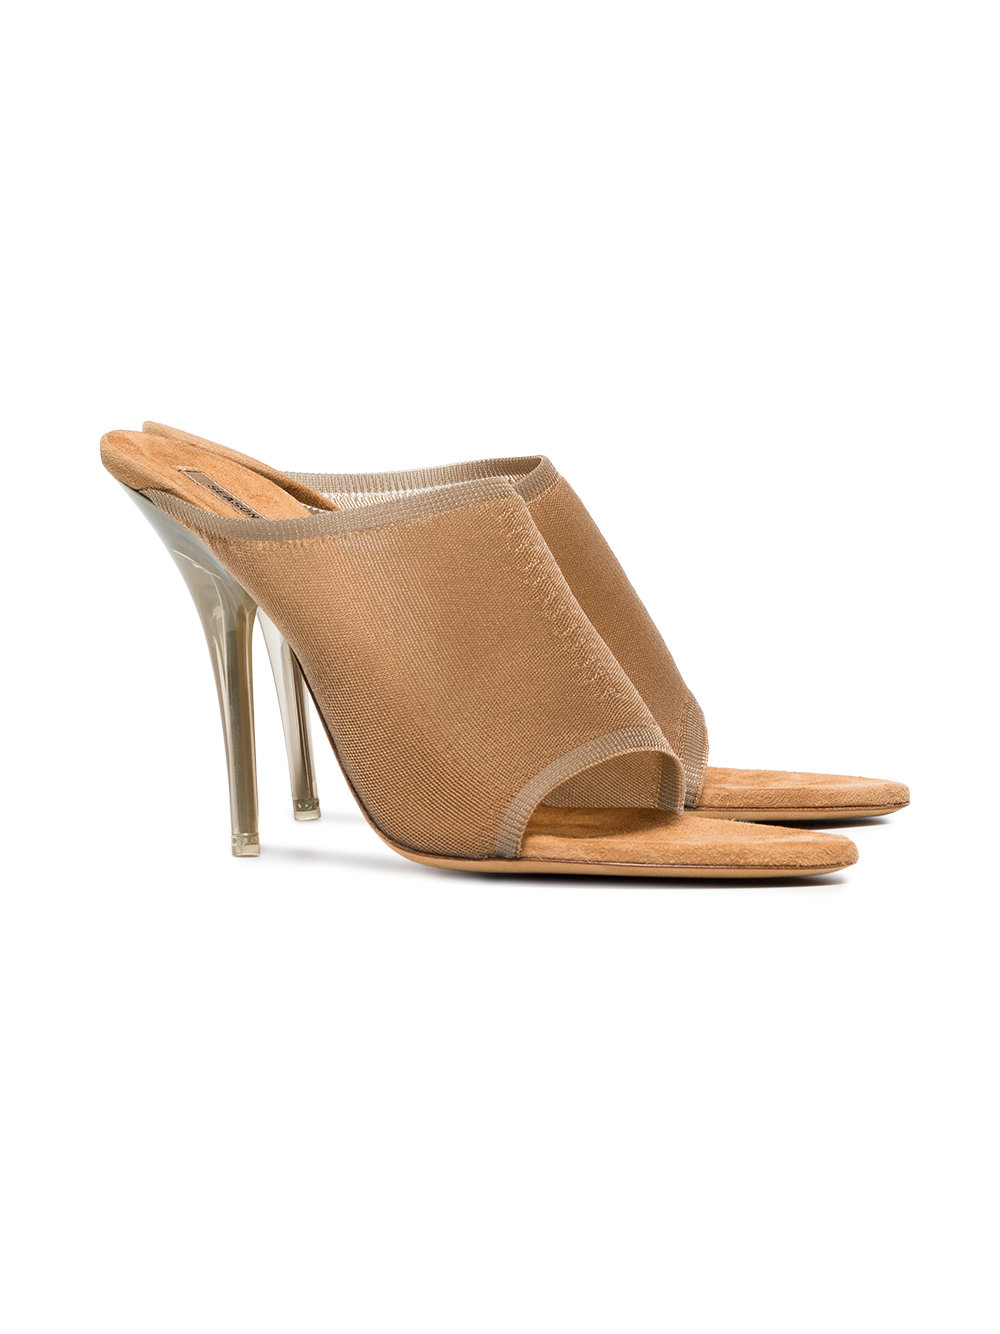 Yeezy taupe 110 knitted high heel mules - Neutrals